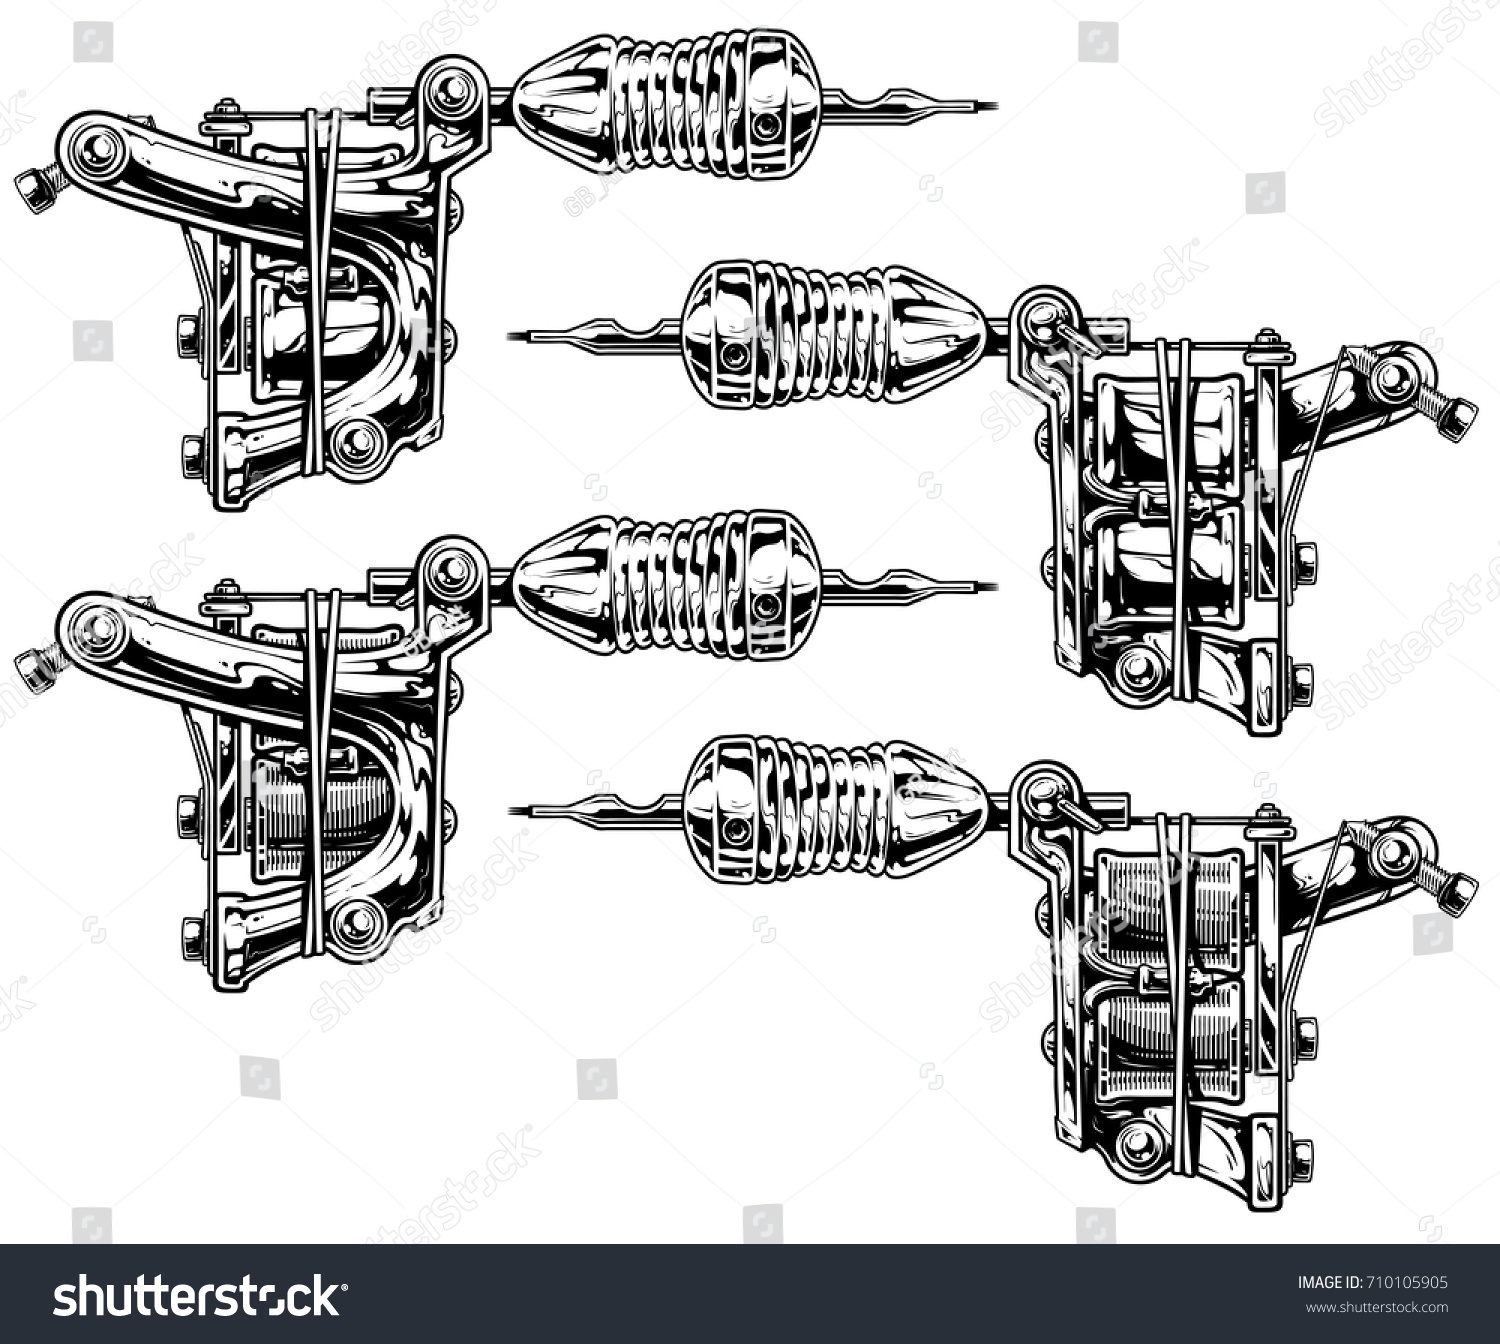 Graphic Detailed Black White Tattoo Machine Stock Vector Royalty Circuit Diagram And Set Vol 8